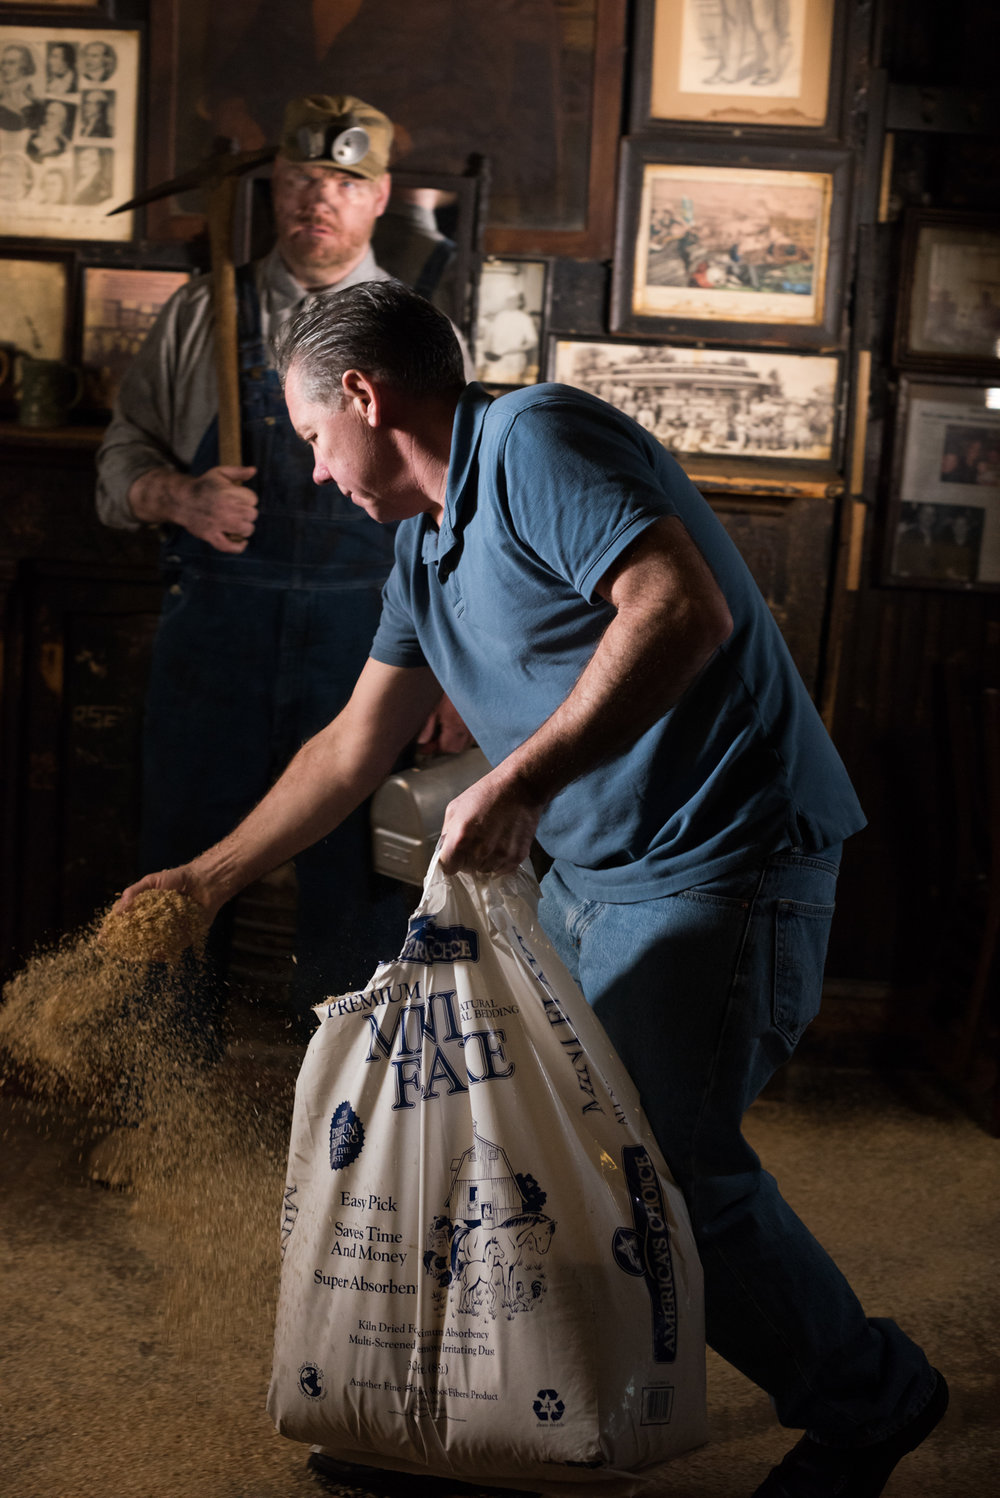 McSorley's manager spreads some saw dust for the shot.